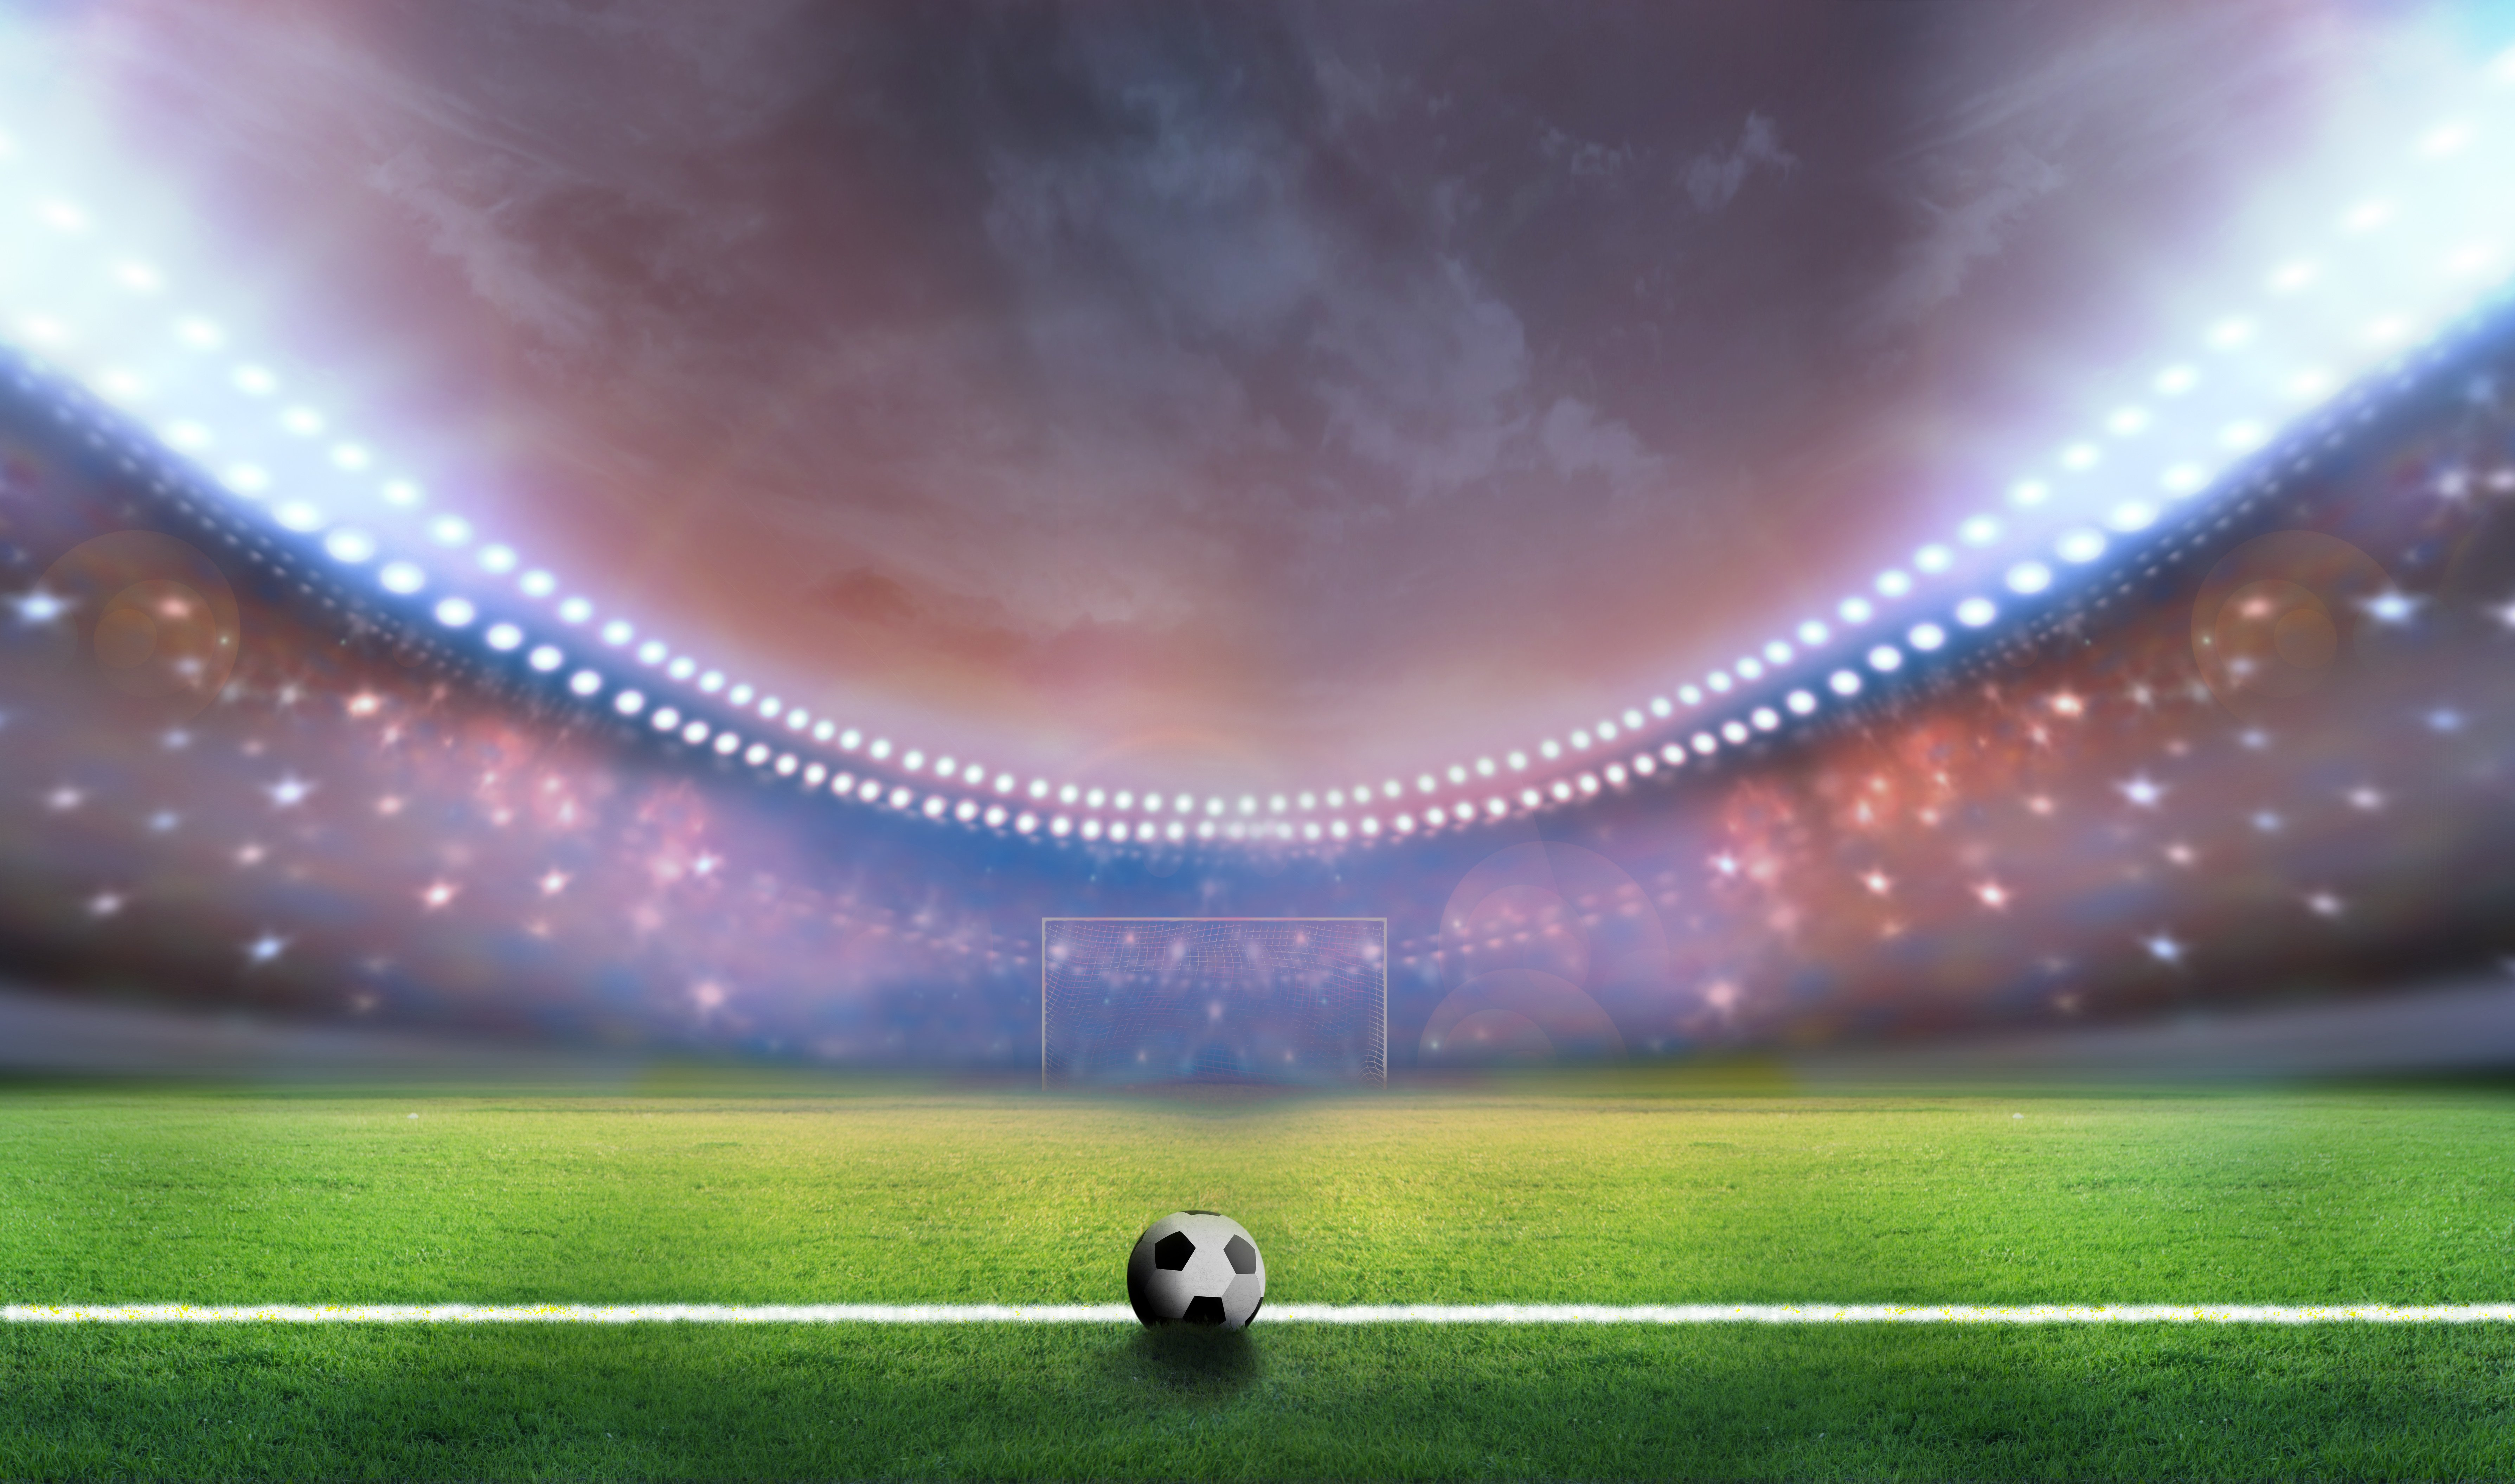 7153x4222 - Soccer Wallpapers 8